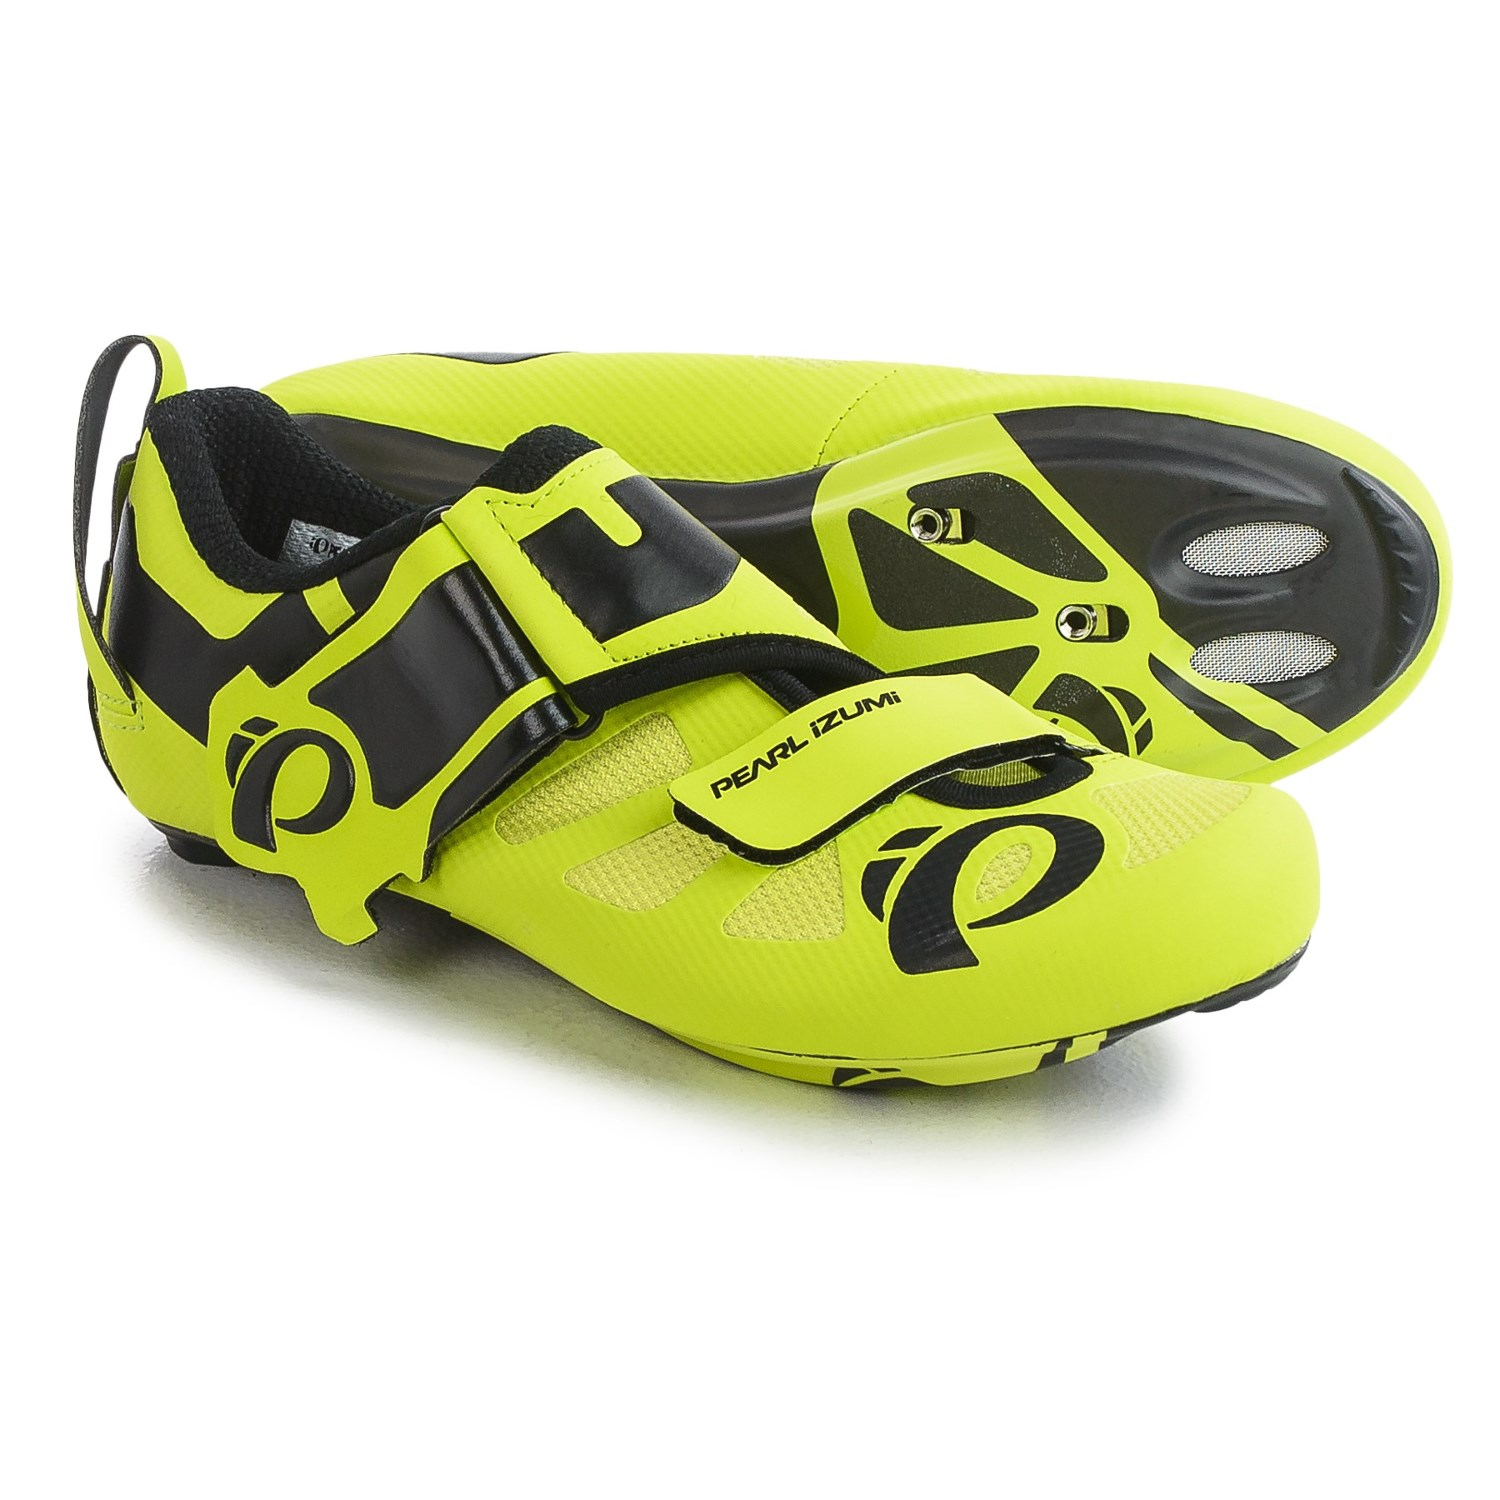 Tri Cycling Shoes Review